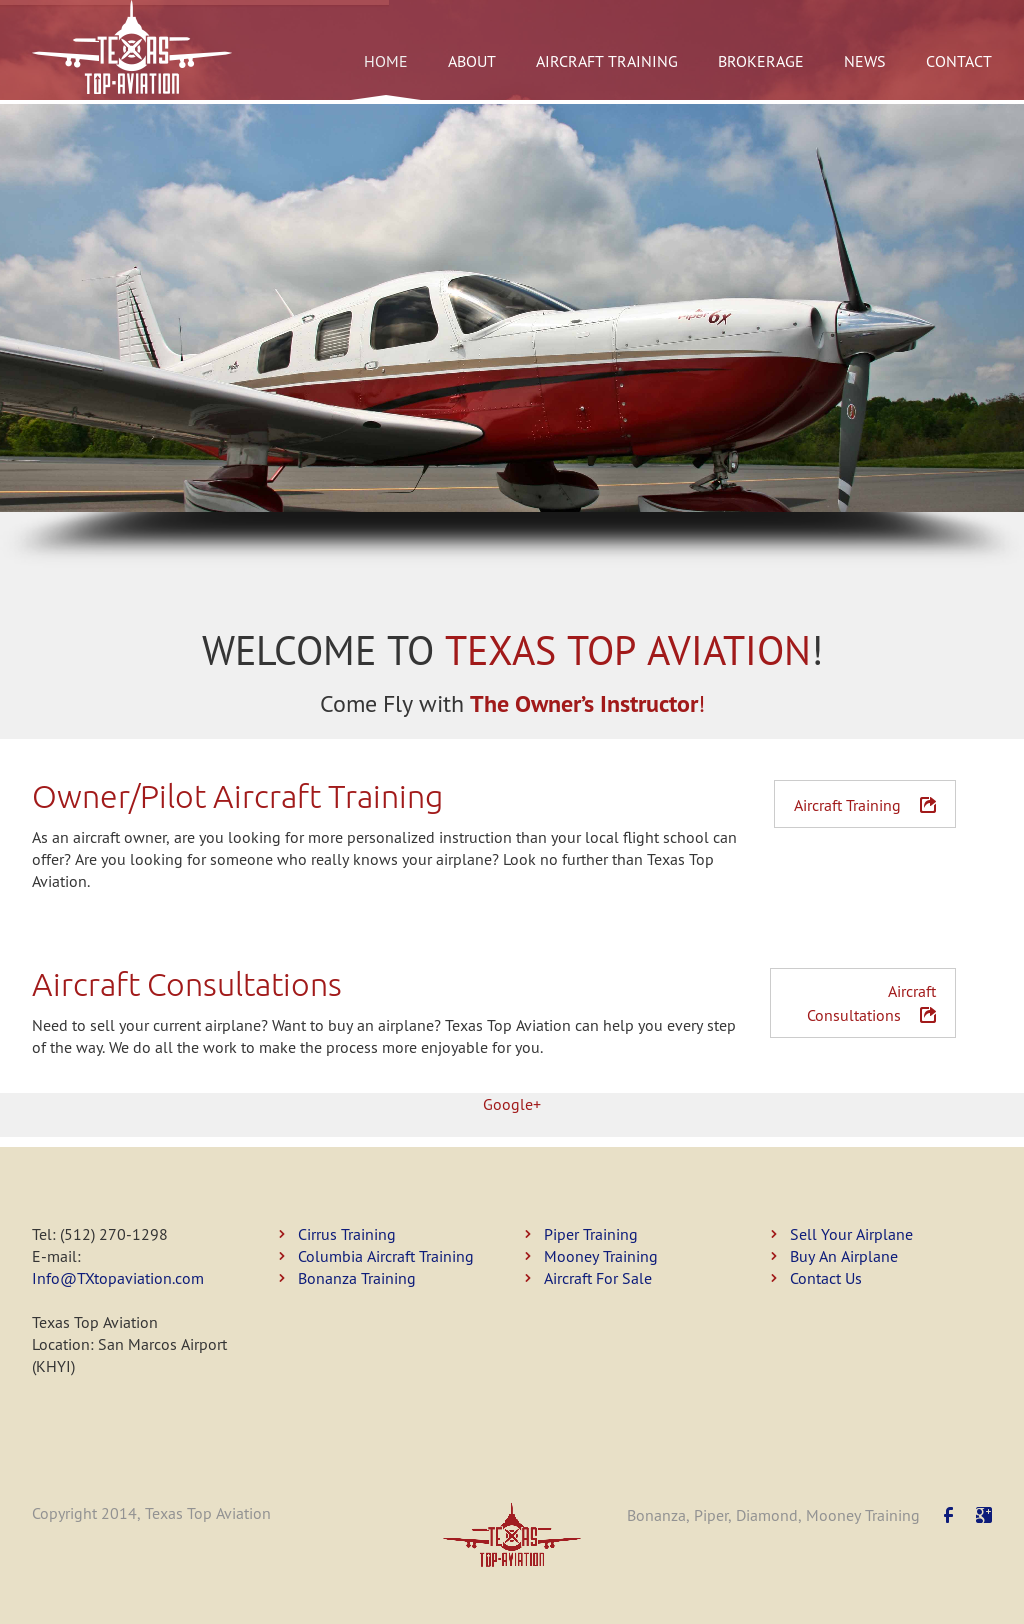 Texas Top Aviation Competitors, Revenue and Employees